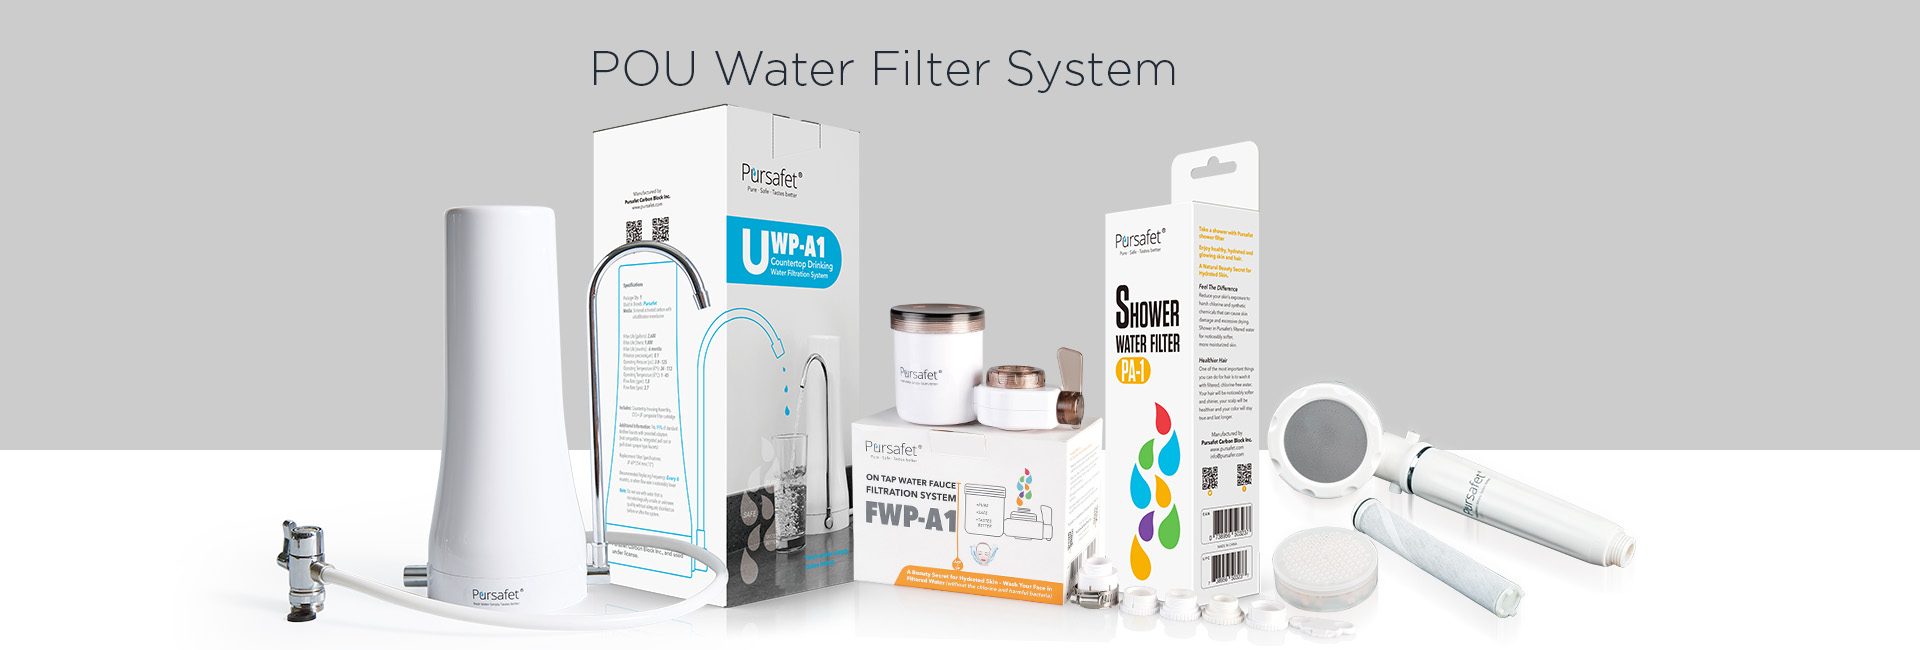 POU water filter series